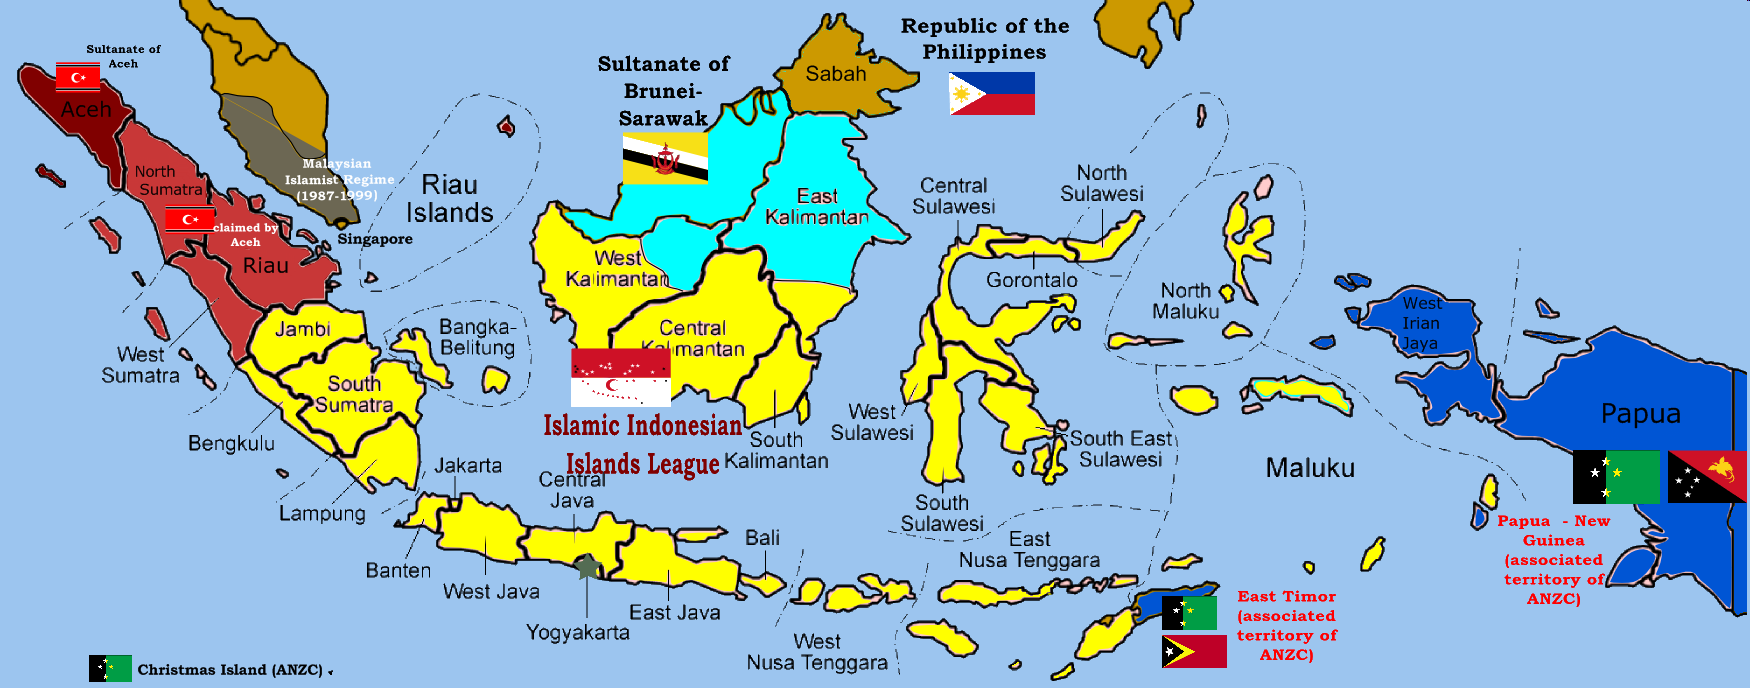 Image Indonesian Region political 2008 1983Doomsdaypng